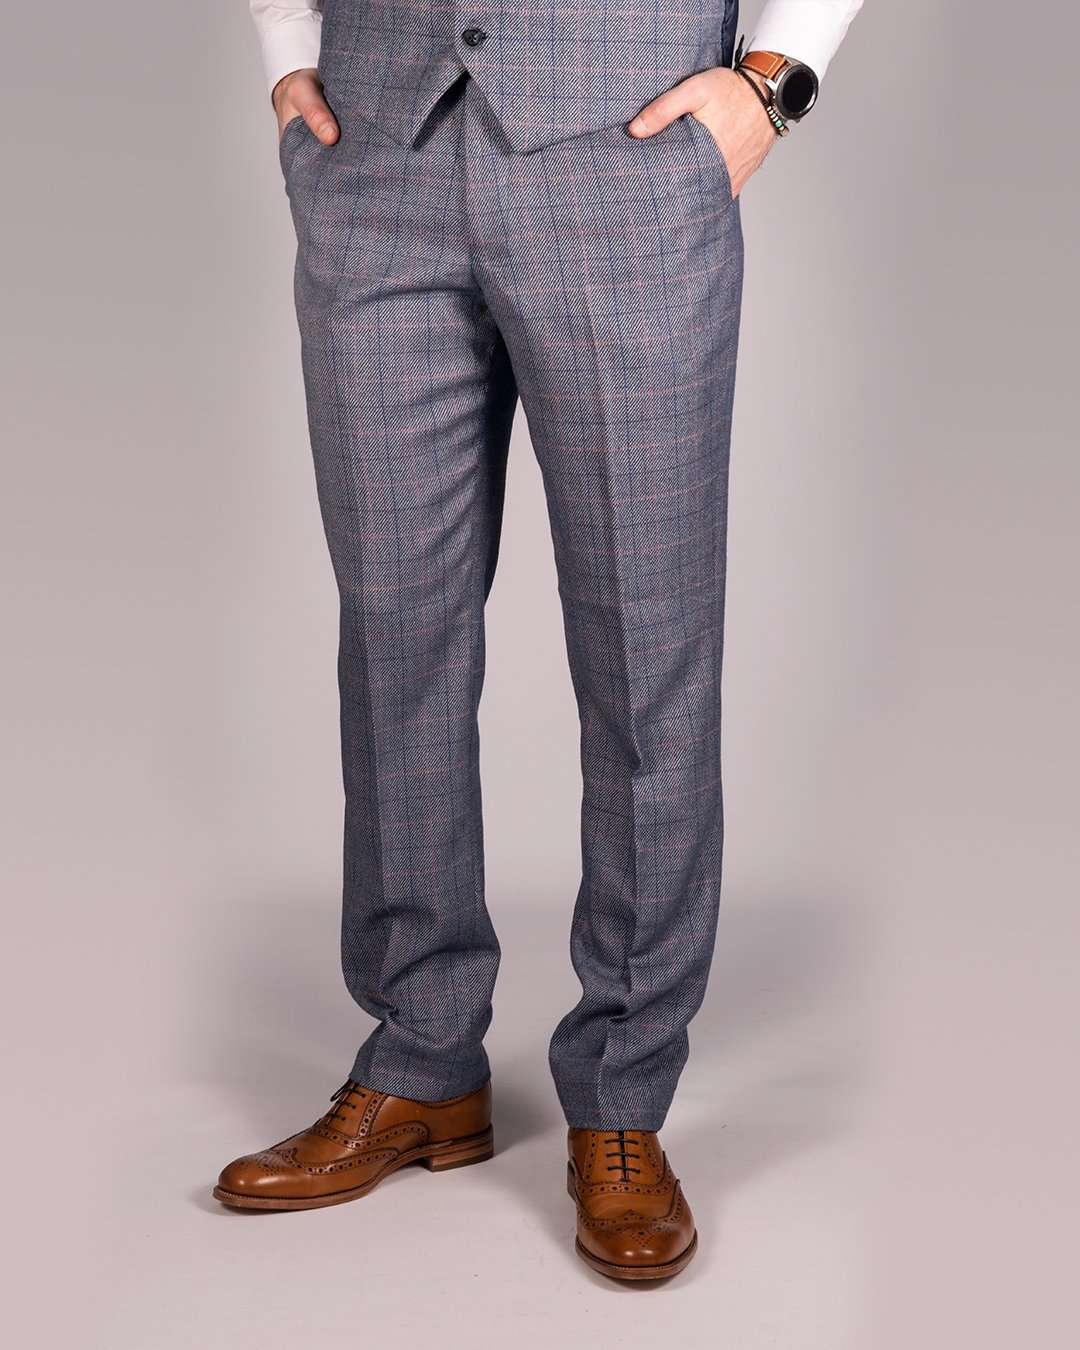 MARC DARCY Hilton Tweed Check Trousers - Revolver Menswear Bawtry